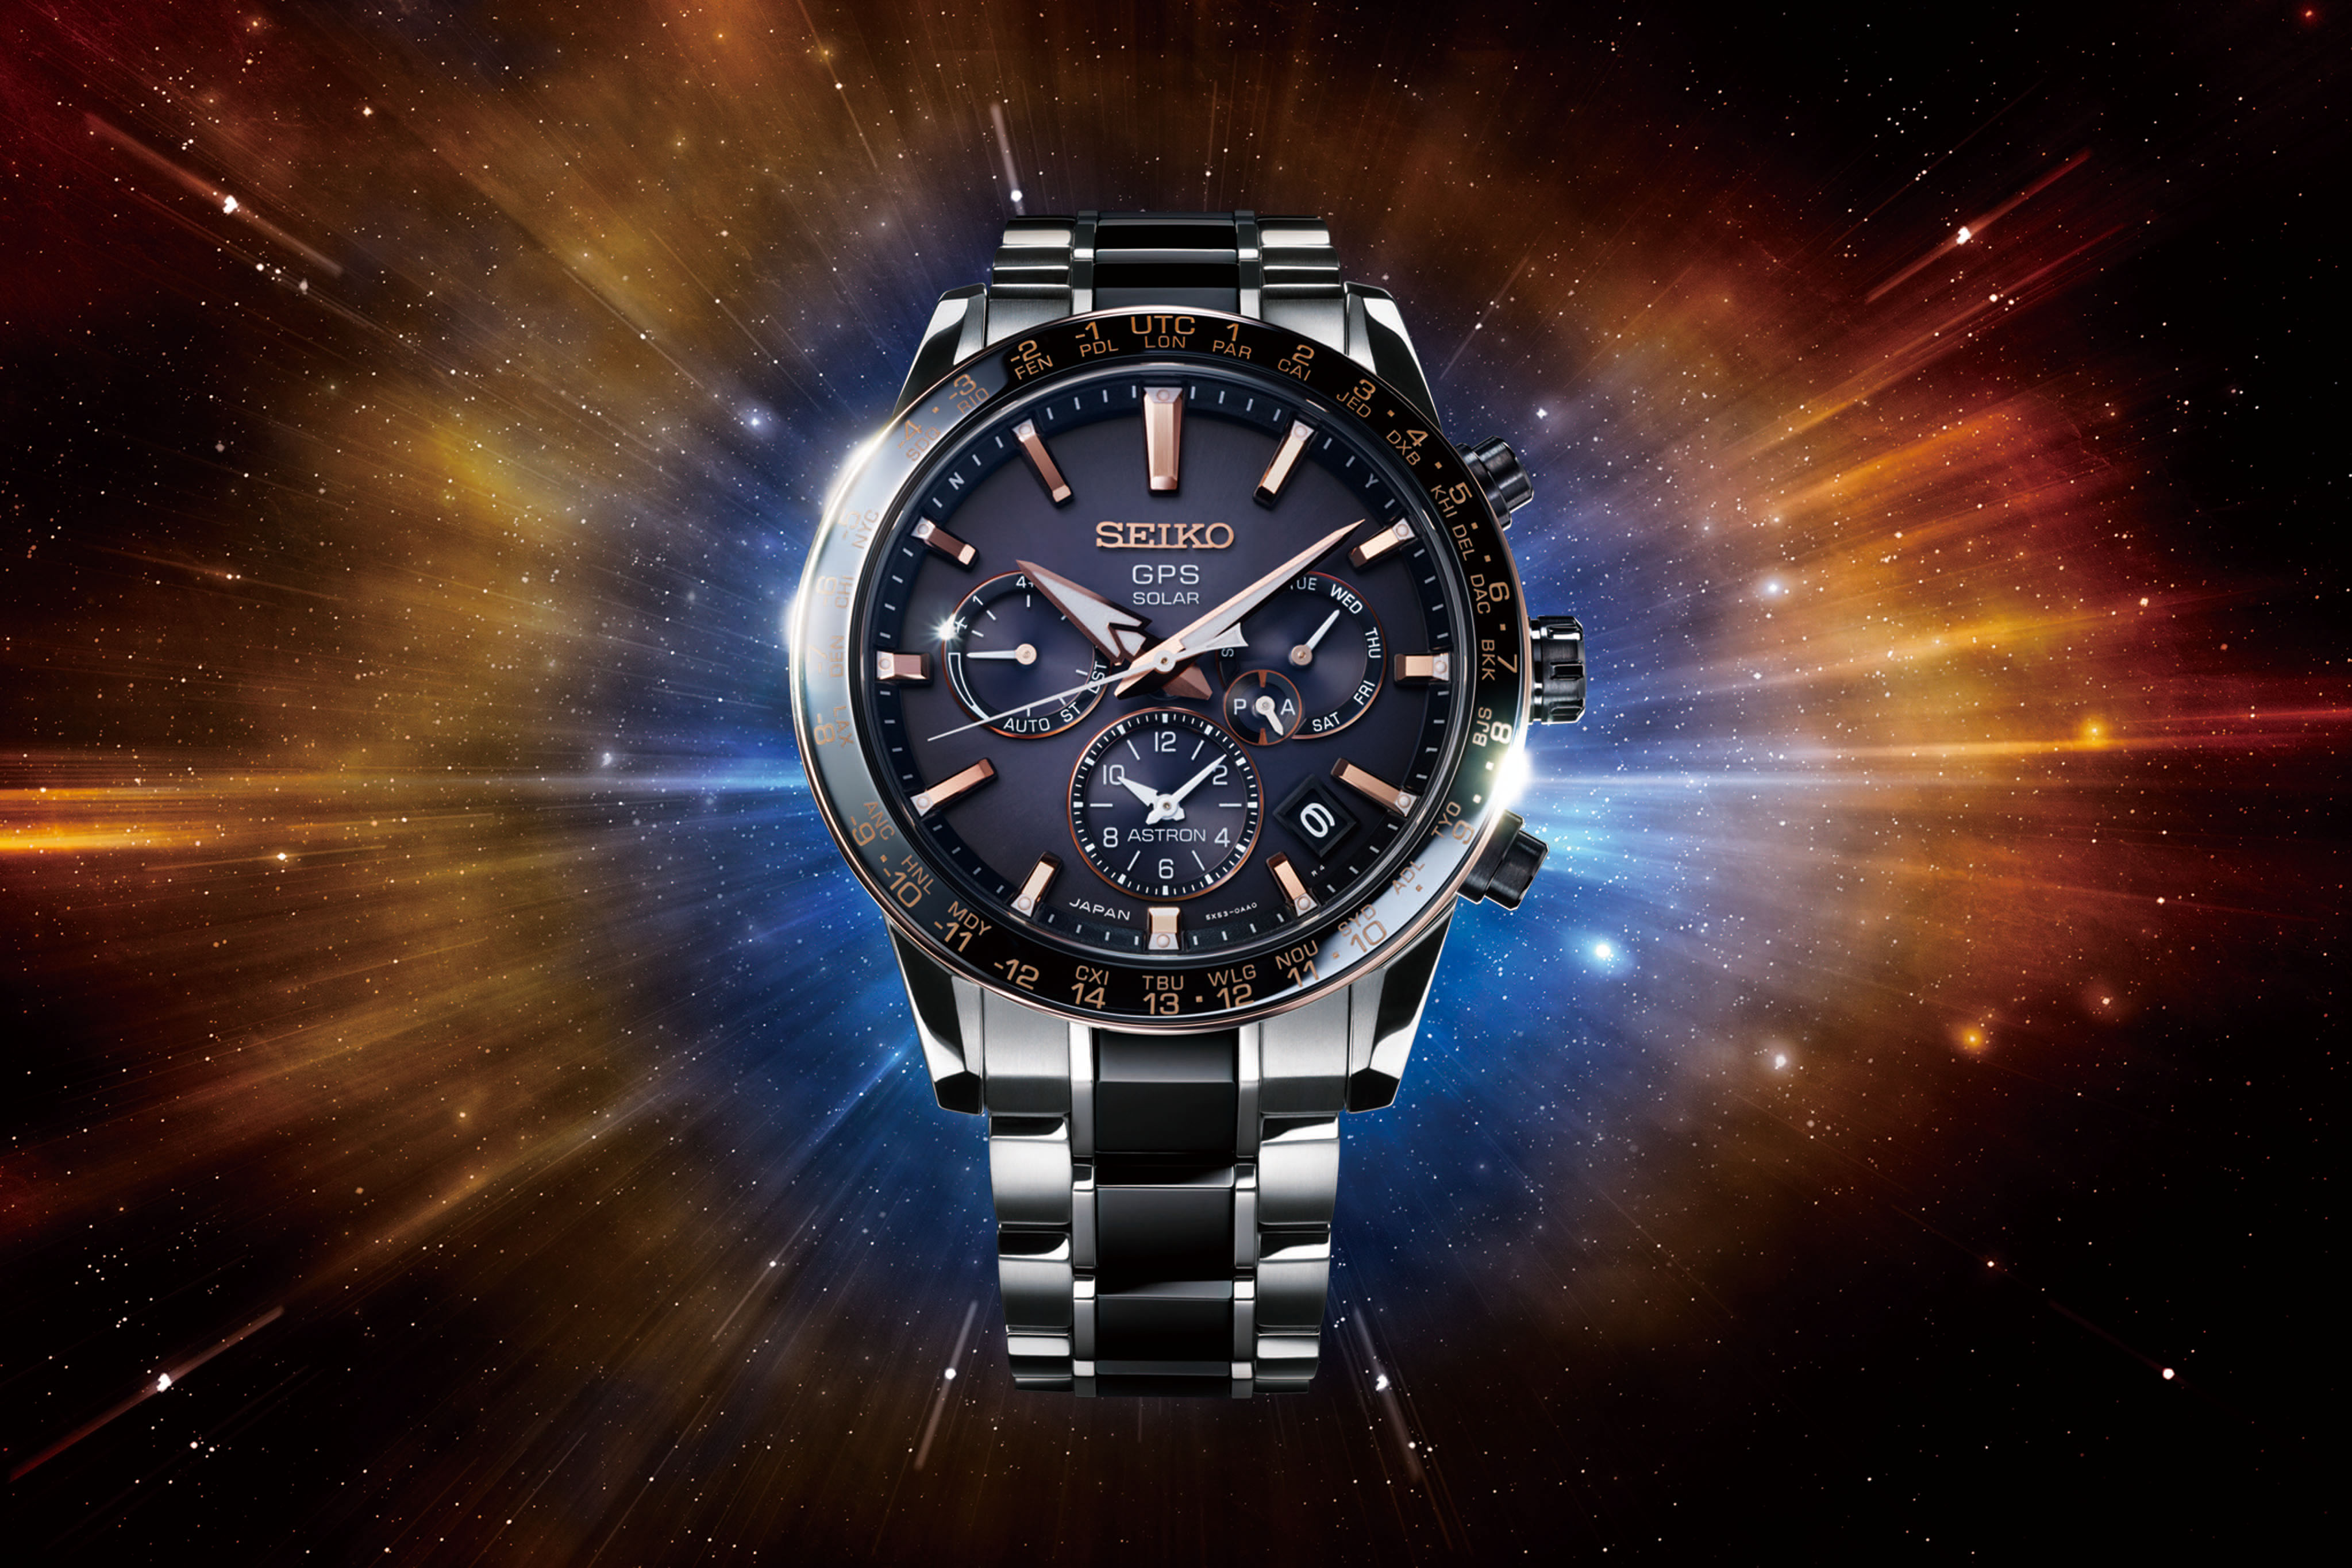 Astron GPS Solar 5X SSH007 Limited Edition